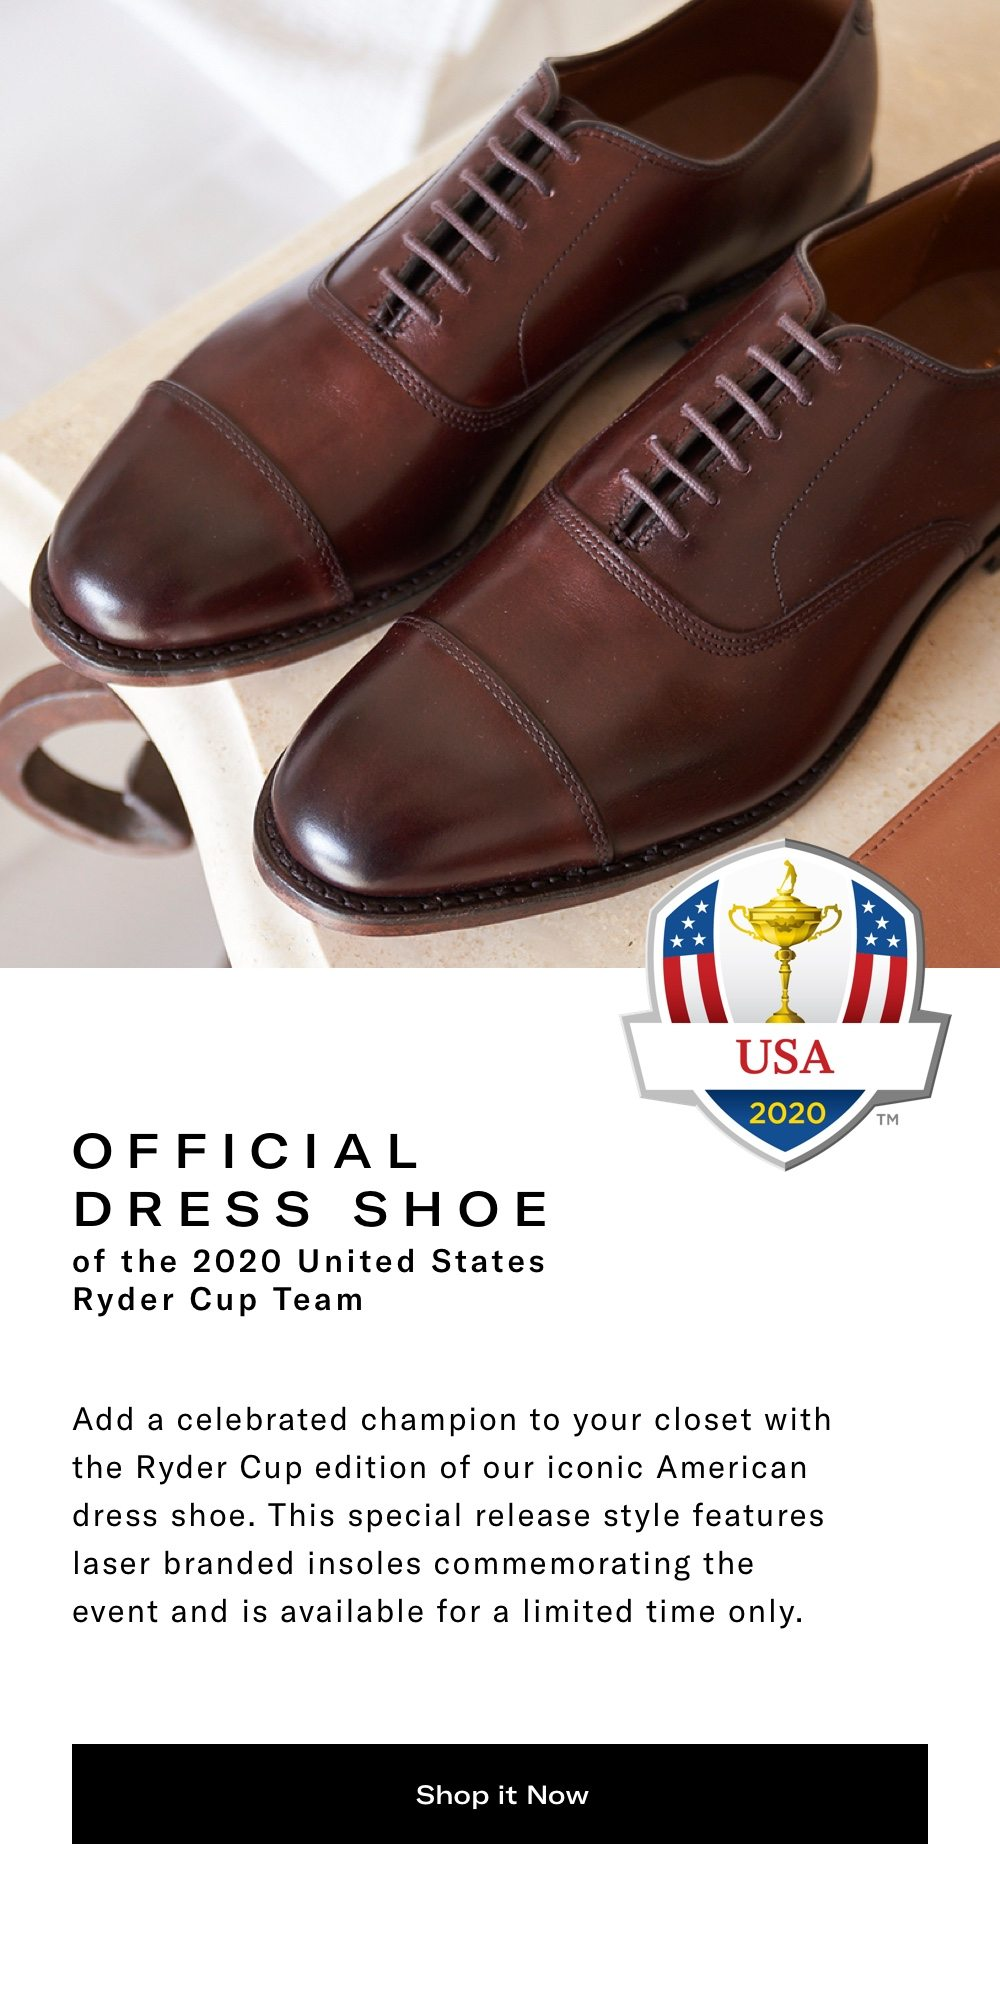 Official Dress Shoe of the 2020 US Ryder Cup Team